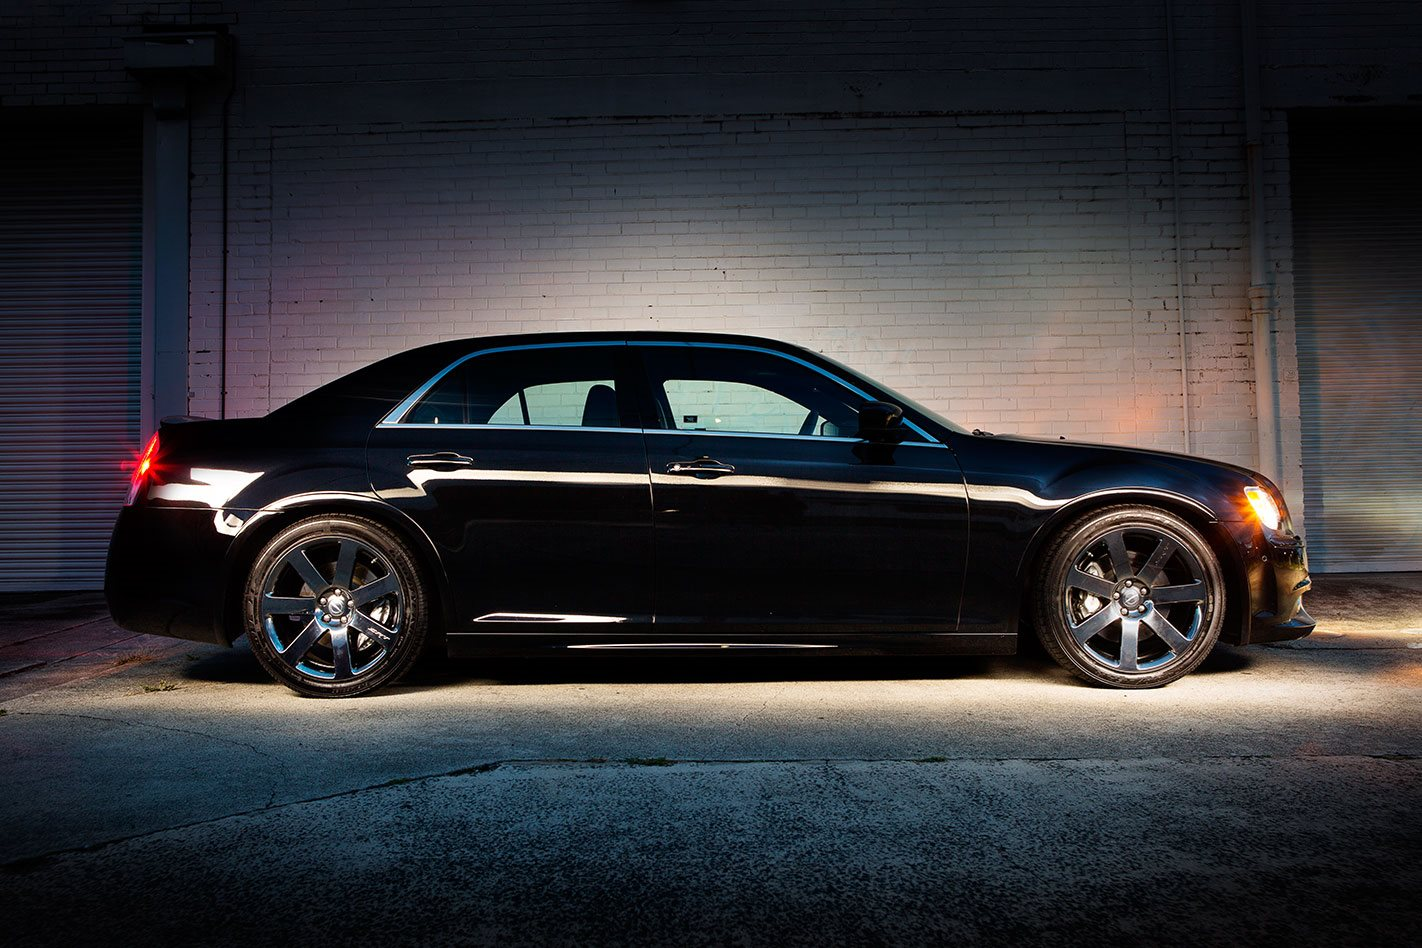 chrysler 300 side view chrysler 300c 300 srt8 project car buyer's guide street machine  at gsmx.co